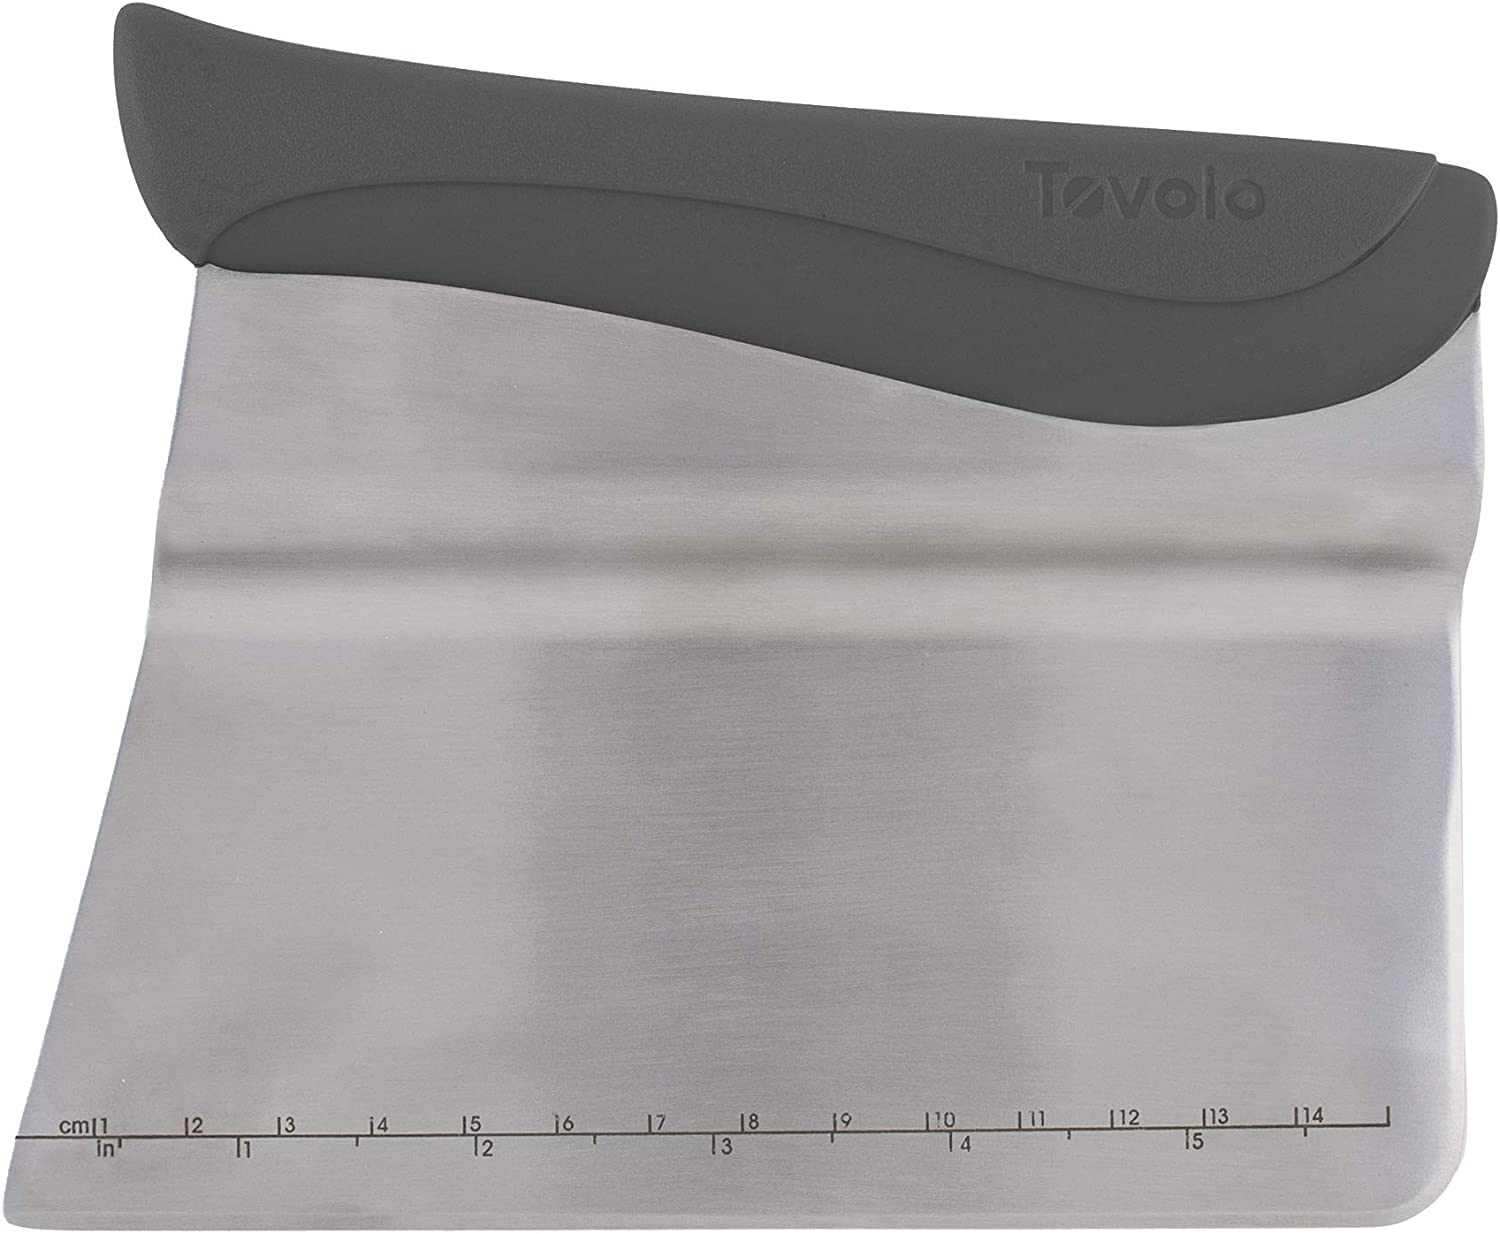 Tovolo Bench Measurement Guide Dough Divider With Offset Blade, Pastry Scraper With Ruler, Ergonomic Baking Tool, Dishwasher-Safe & BPA-Free, Charcoal